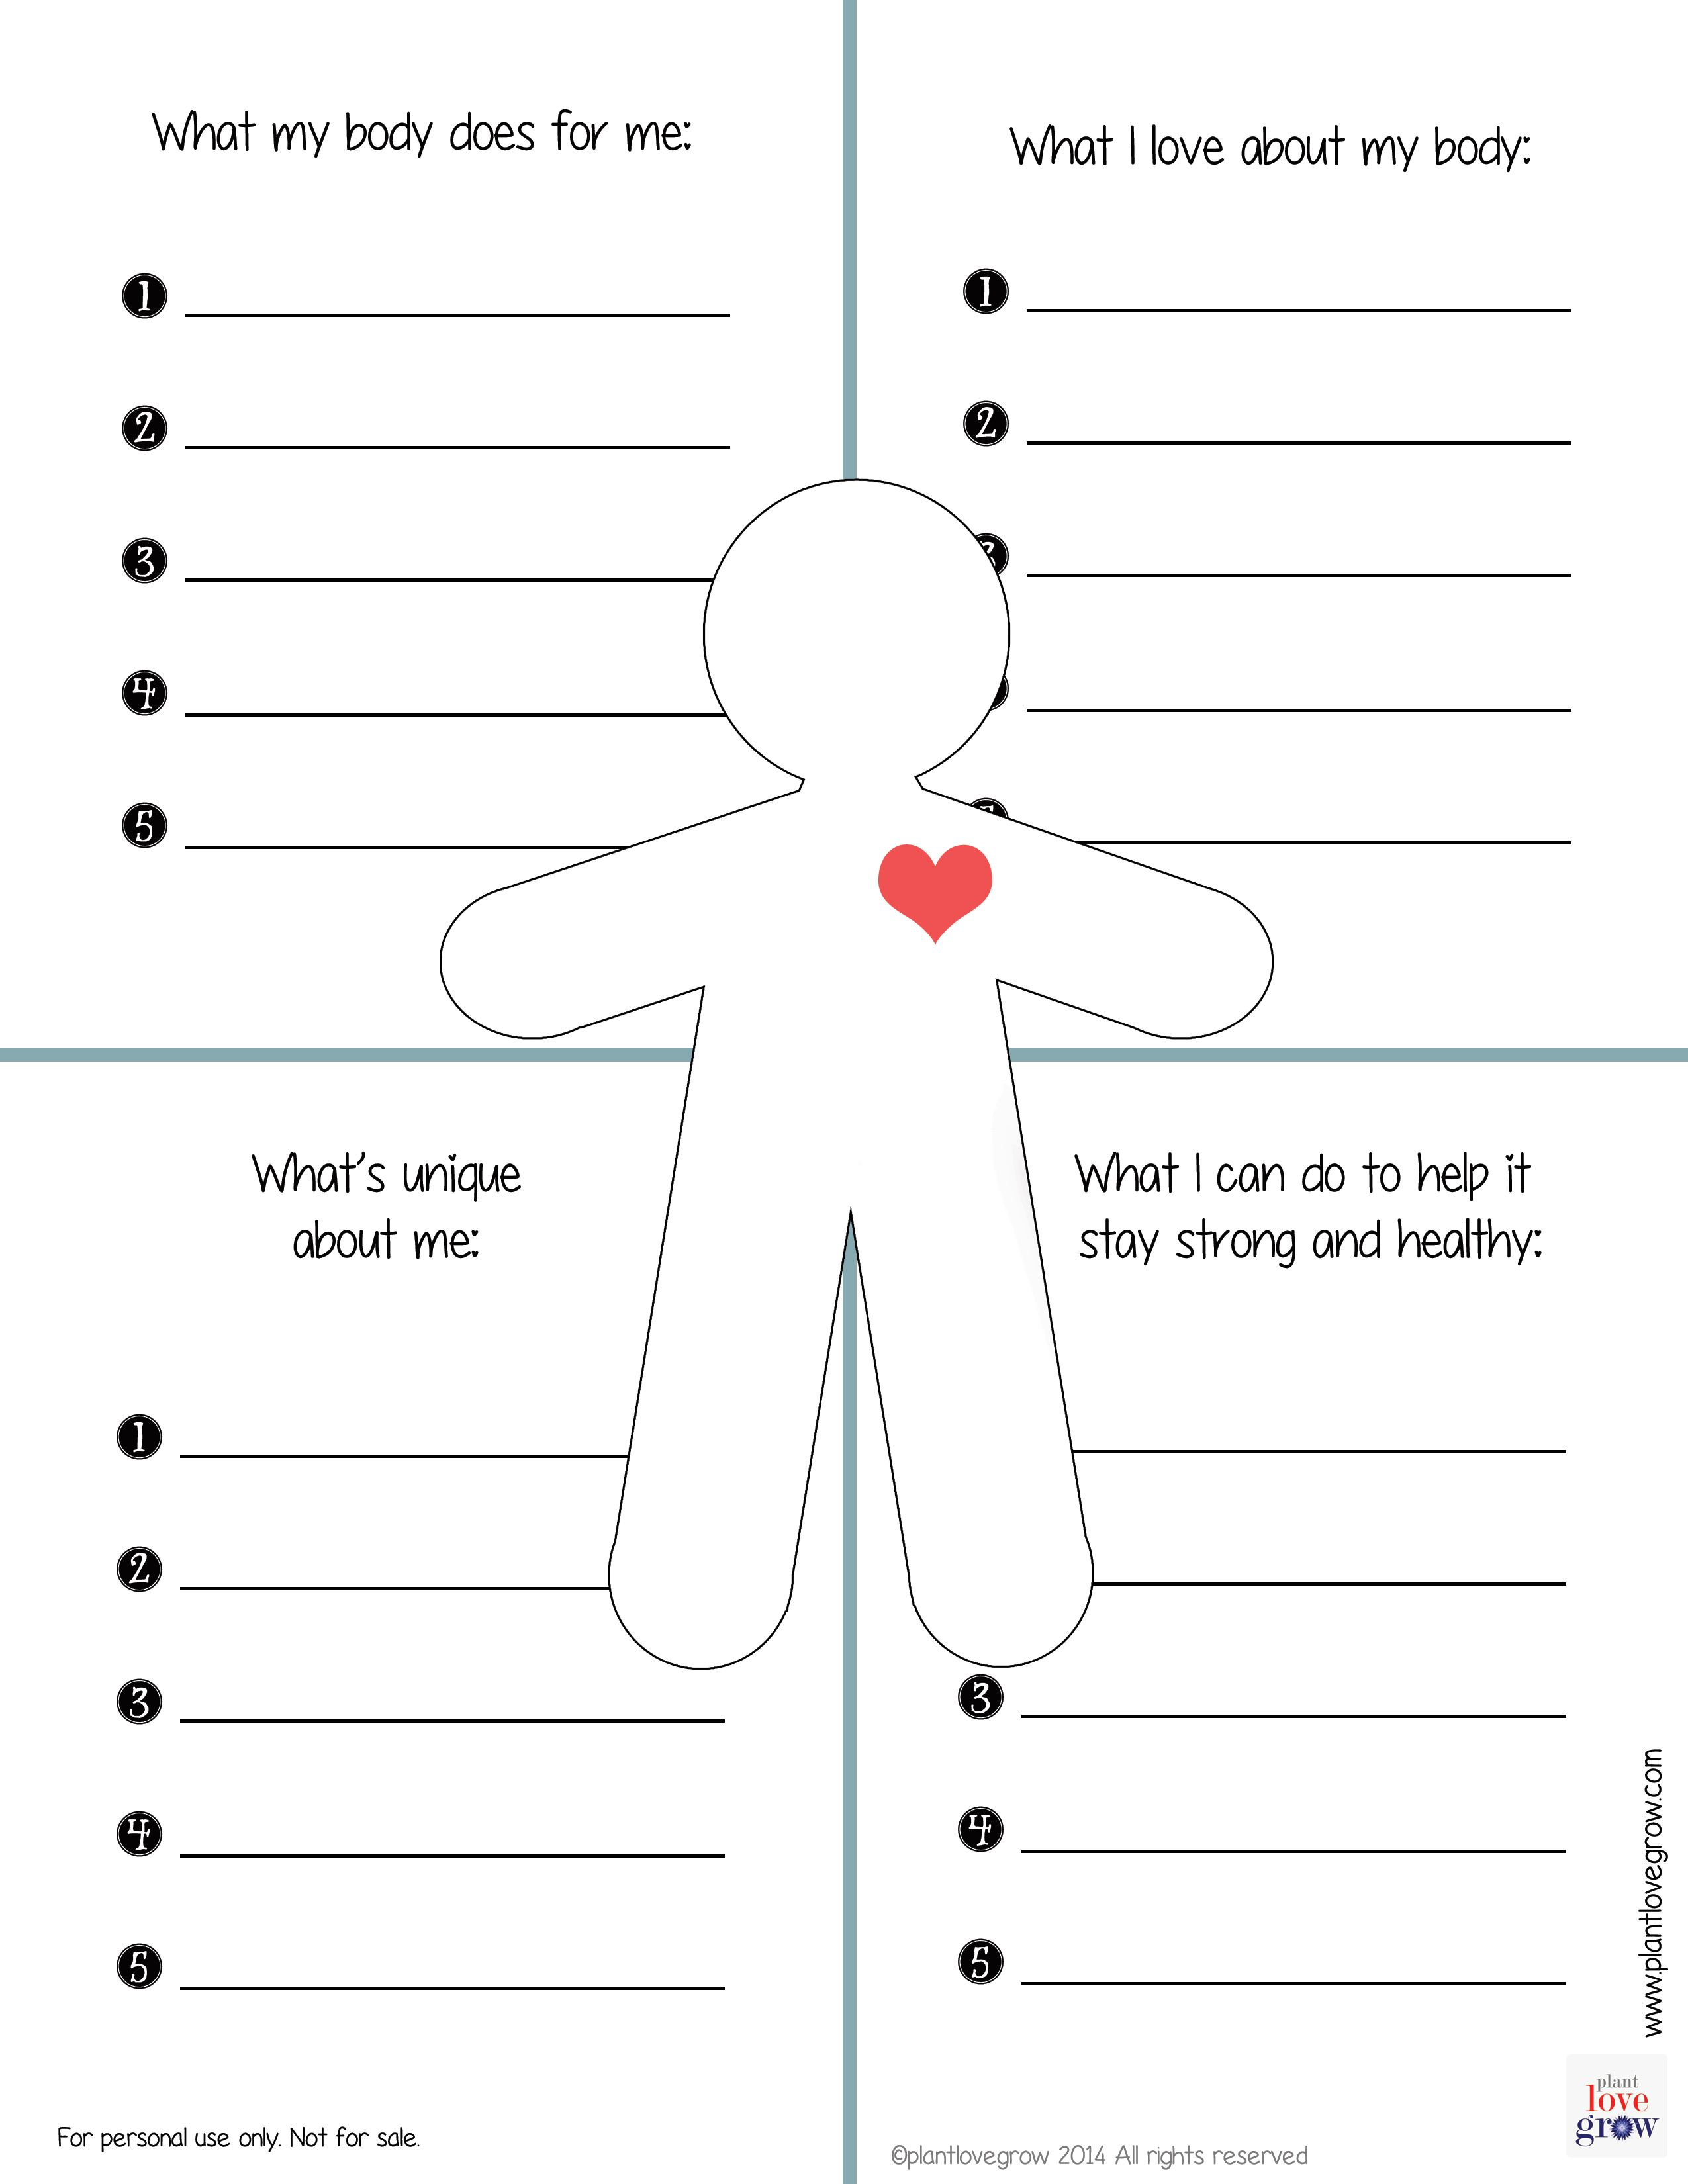 Worksheets Building Self Esteem Worksheets what my body does for me i love about whats unique can do to help it stay strong and healthy c